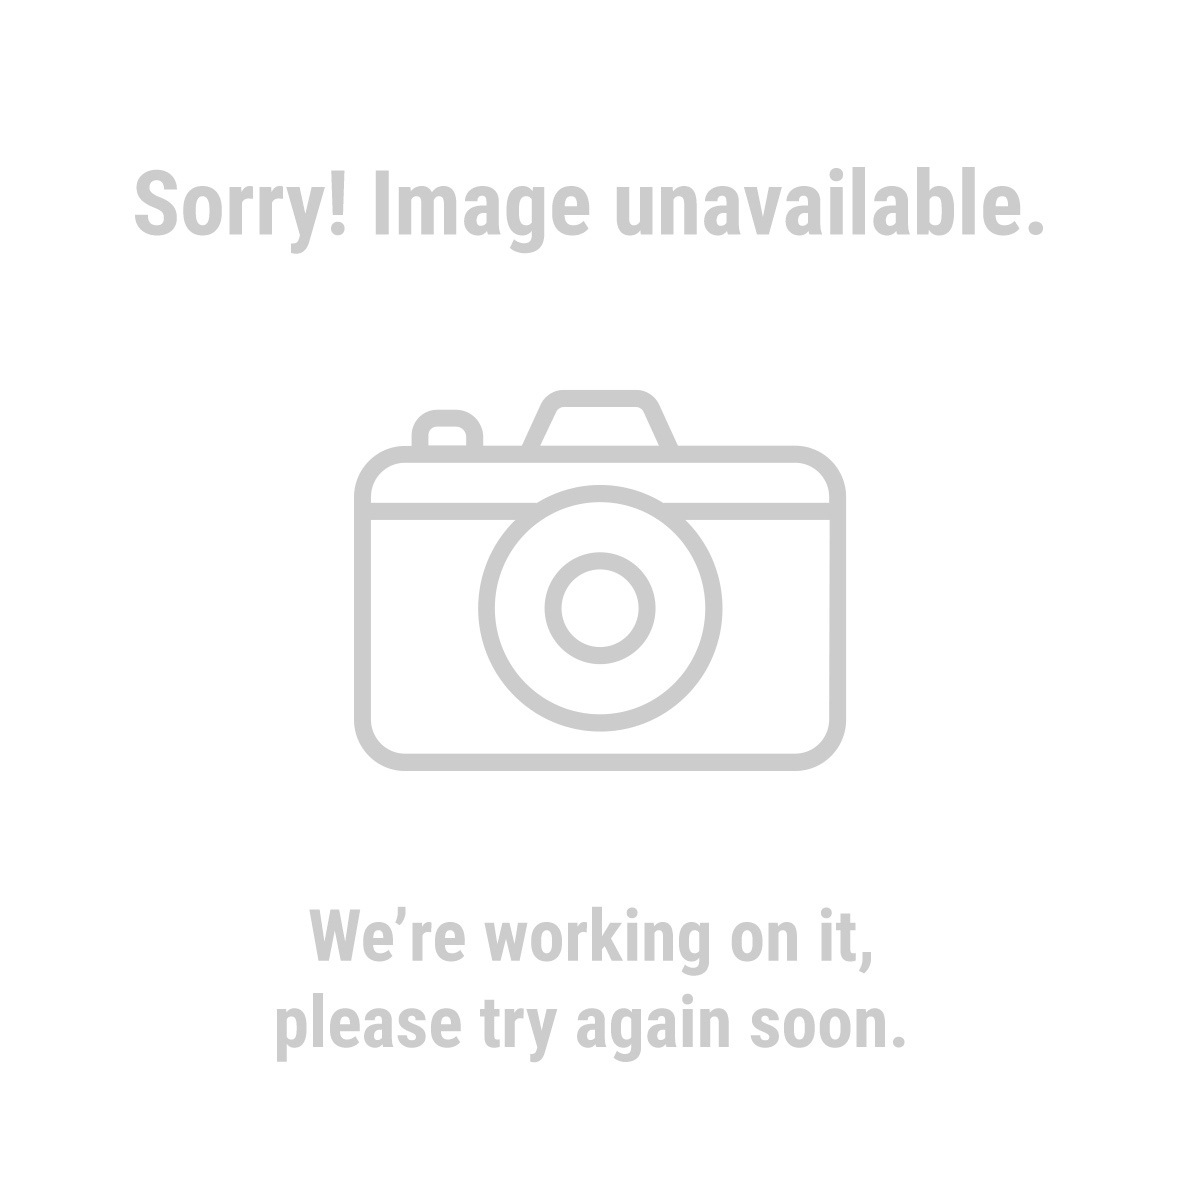 Vanguard 62925 50 ft. x 14 Gauge Indoor/Outdoor Extension Cord